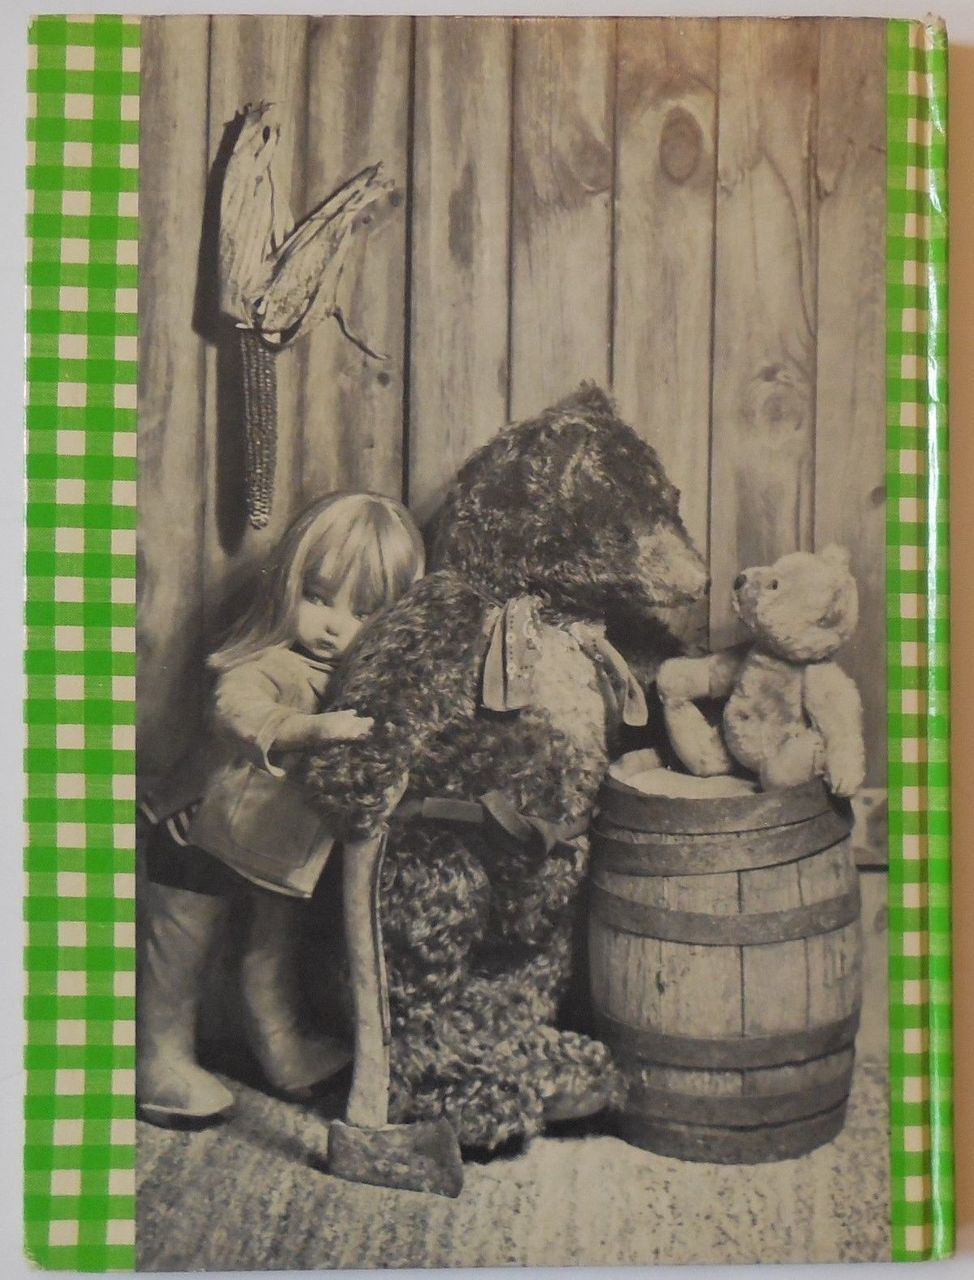 EDITH & BIG BAD BILL: A LONELY DOLL STORY, by Dare Wright - 1968